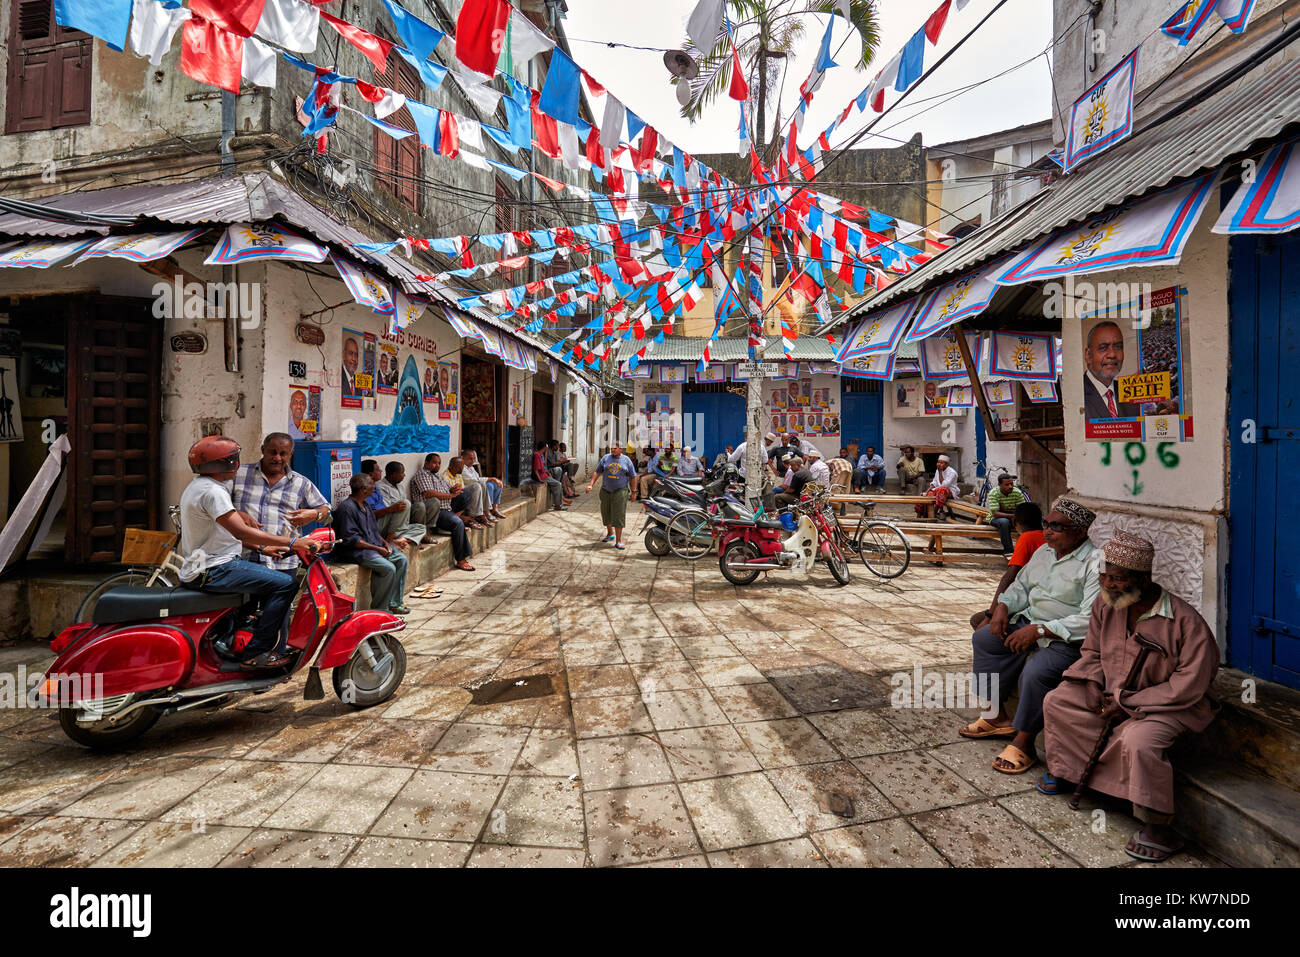 colorful flags for elections at street scene with typical buildings in Stone Town, UNESCO World Heritage Site, Zanzibar, - Stock Image